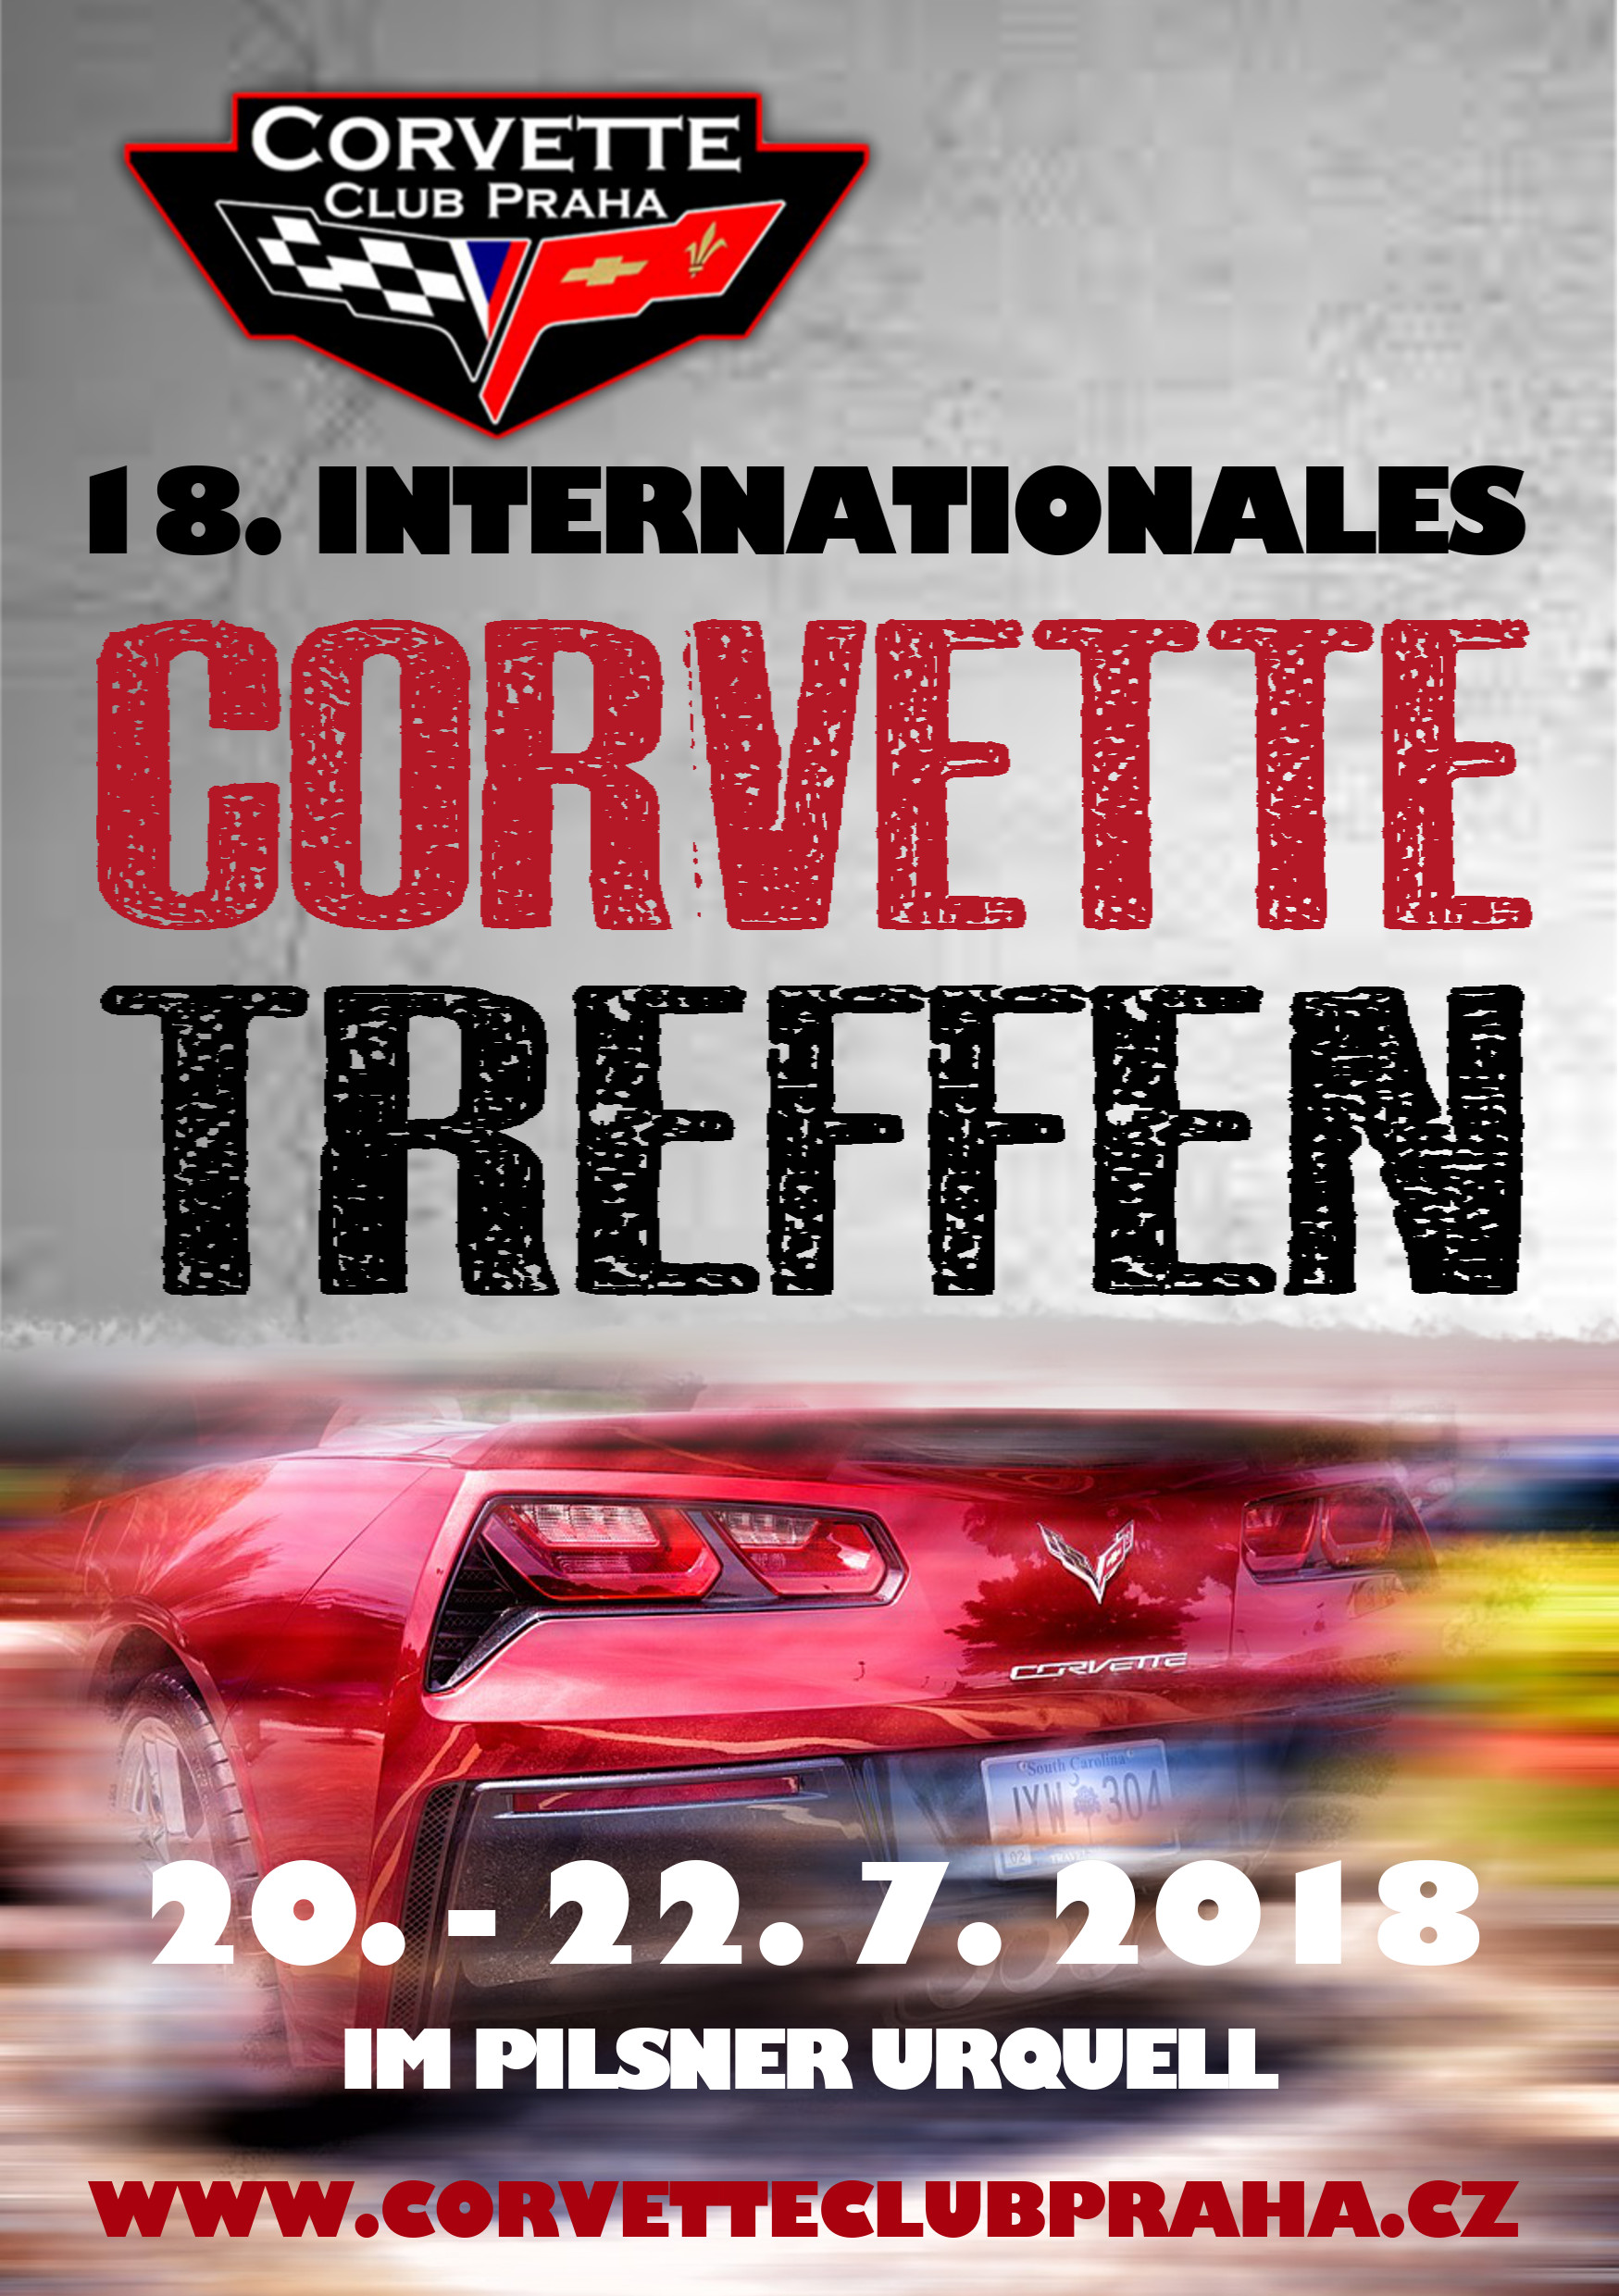 16. Internationale Treffen der Corvette Club Praha